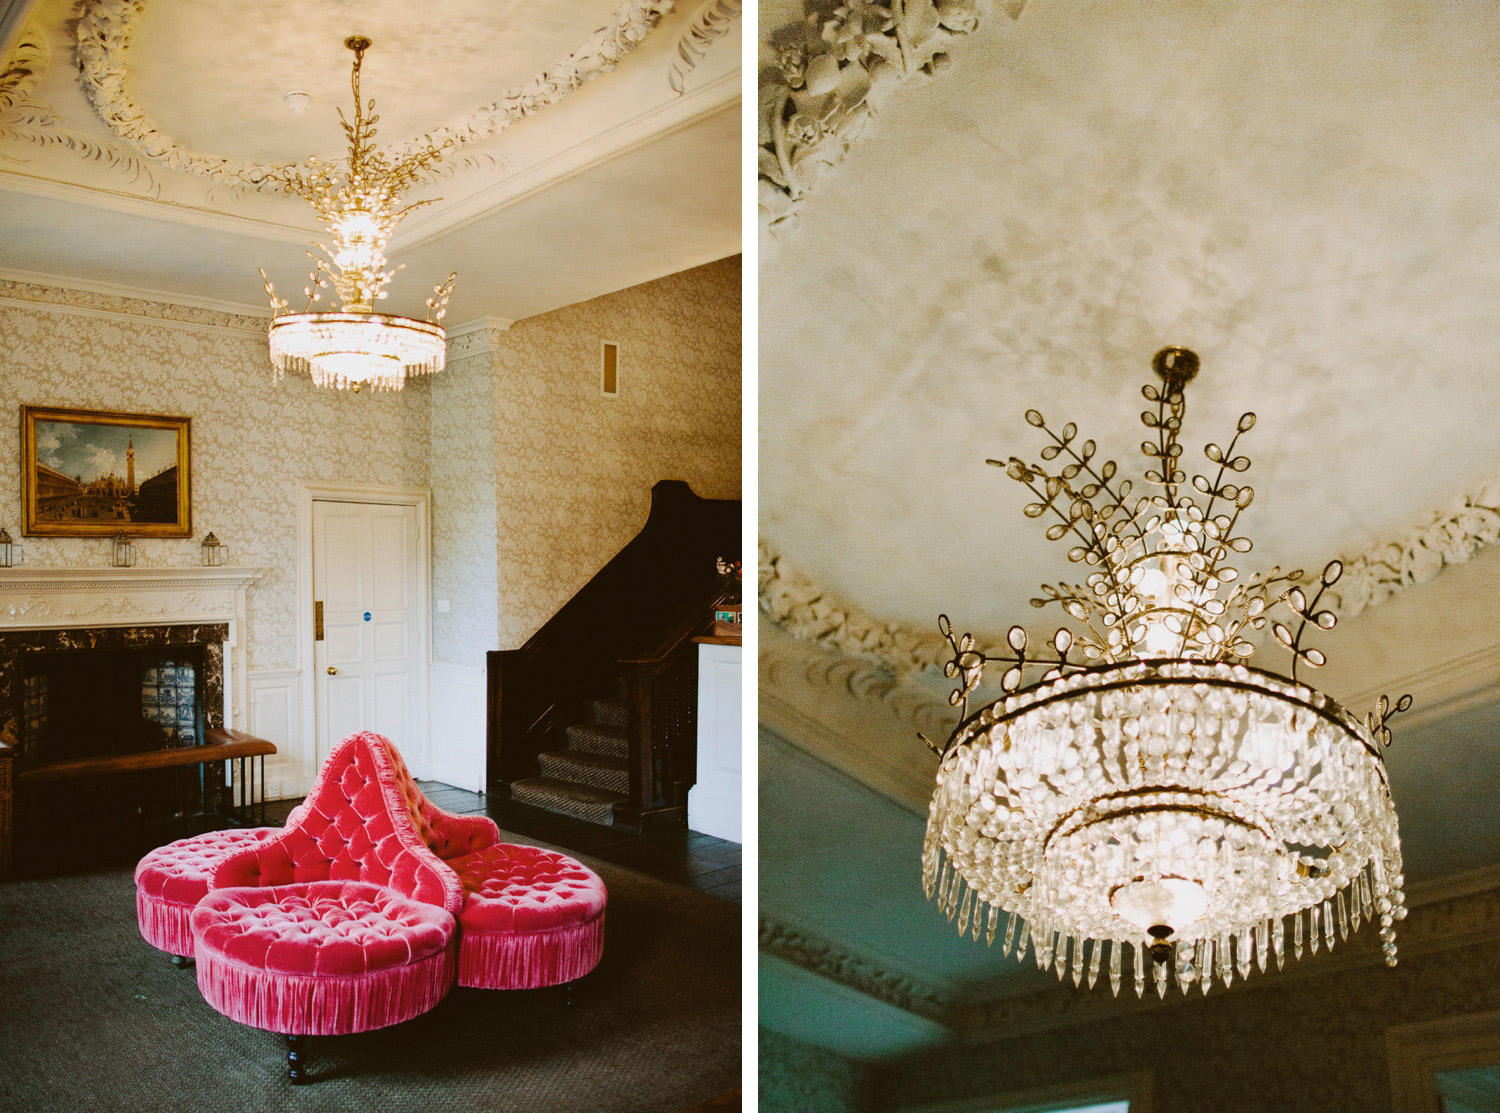 chandelier and red sofa beneath